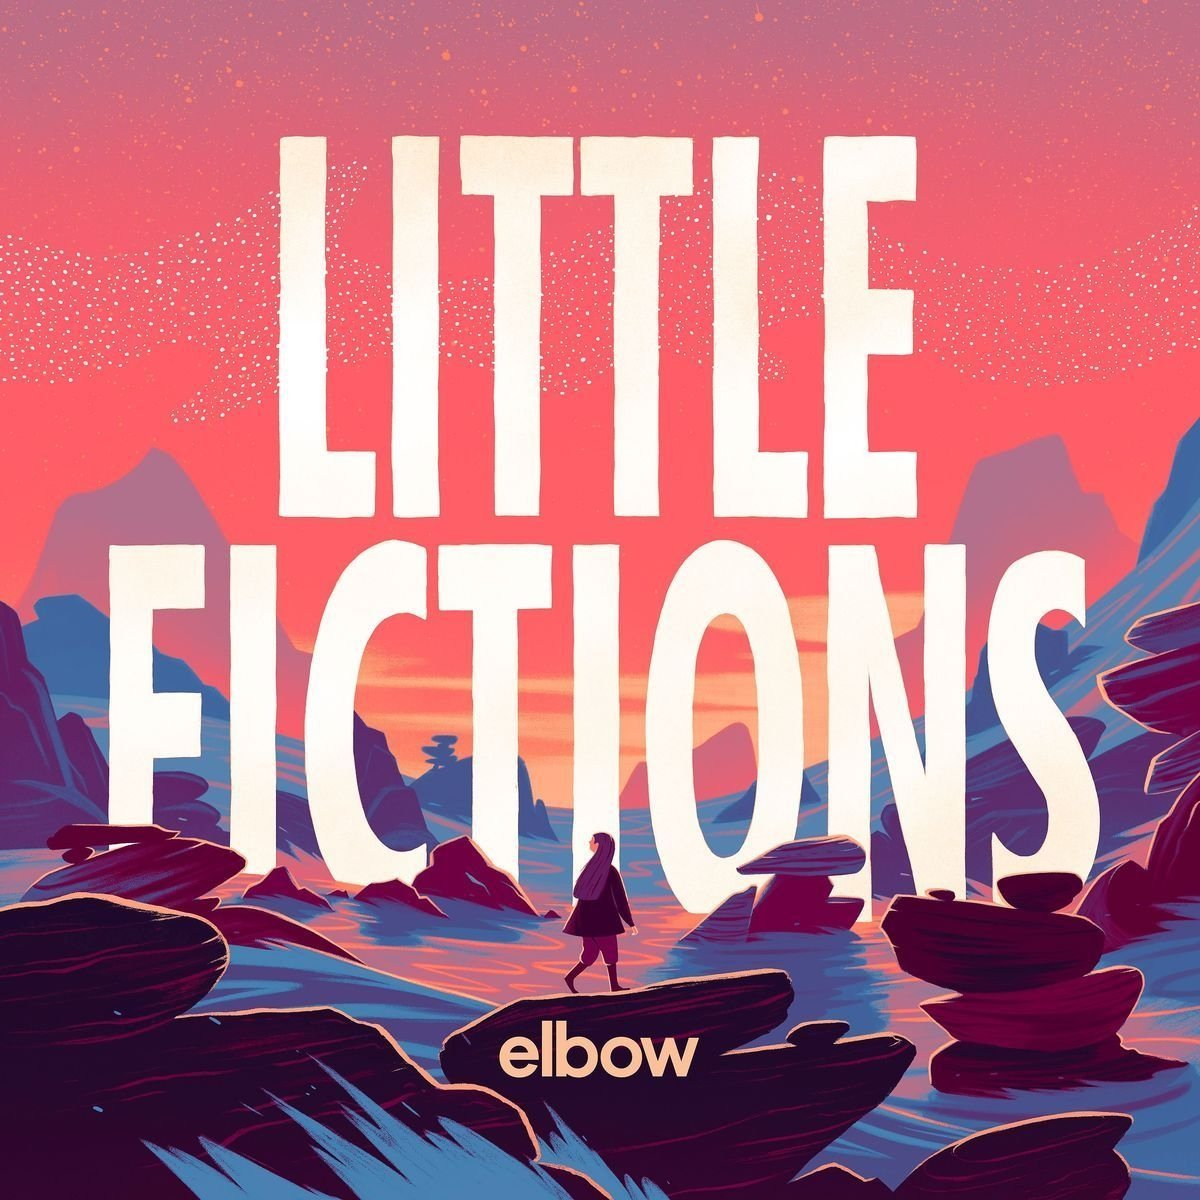 Elbow - Little Fictions.jpg - 200.82 KB